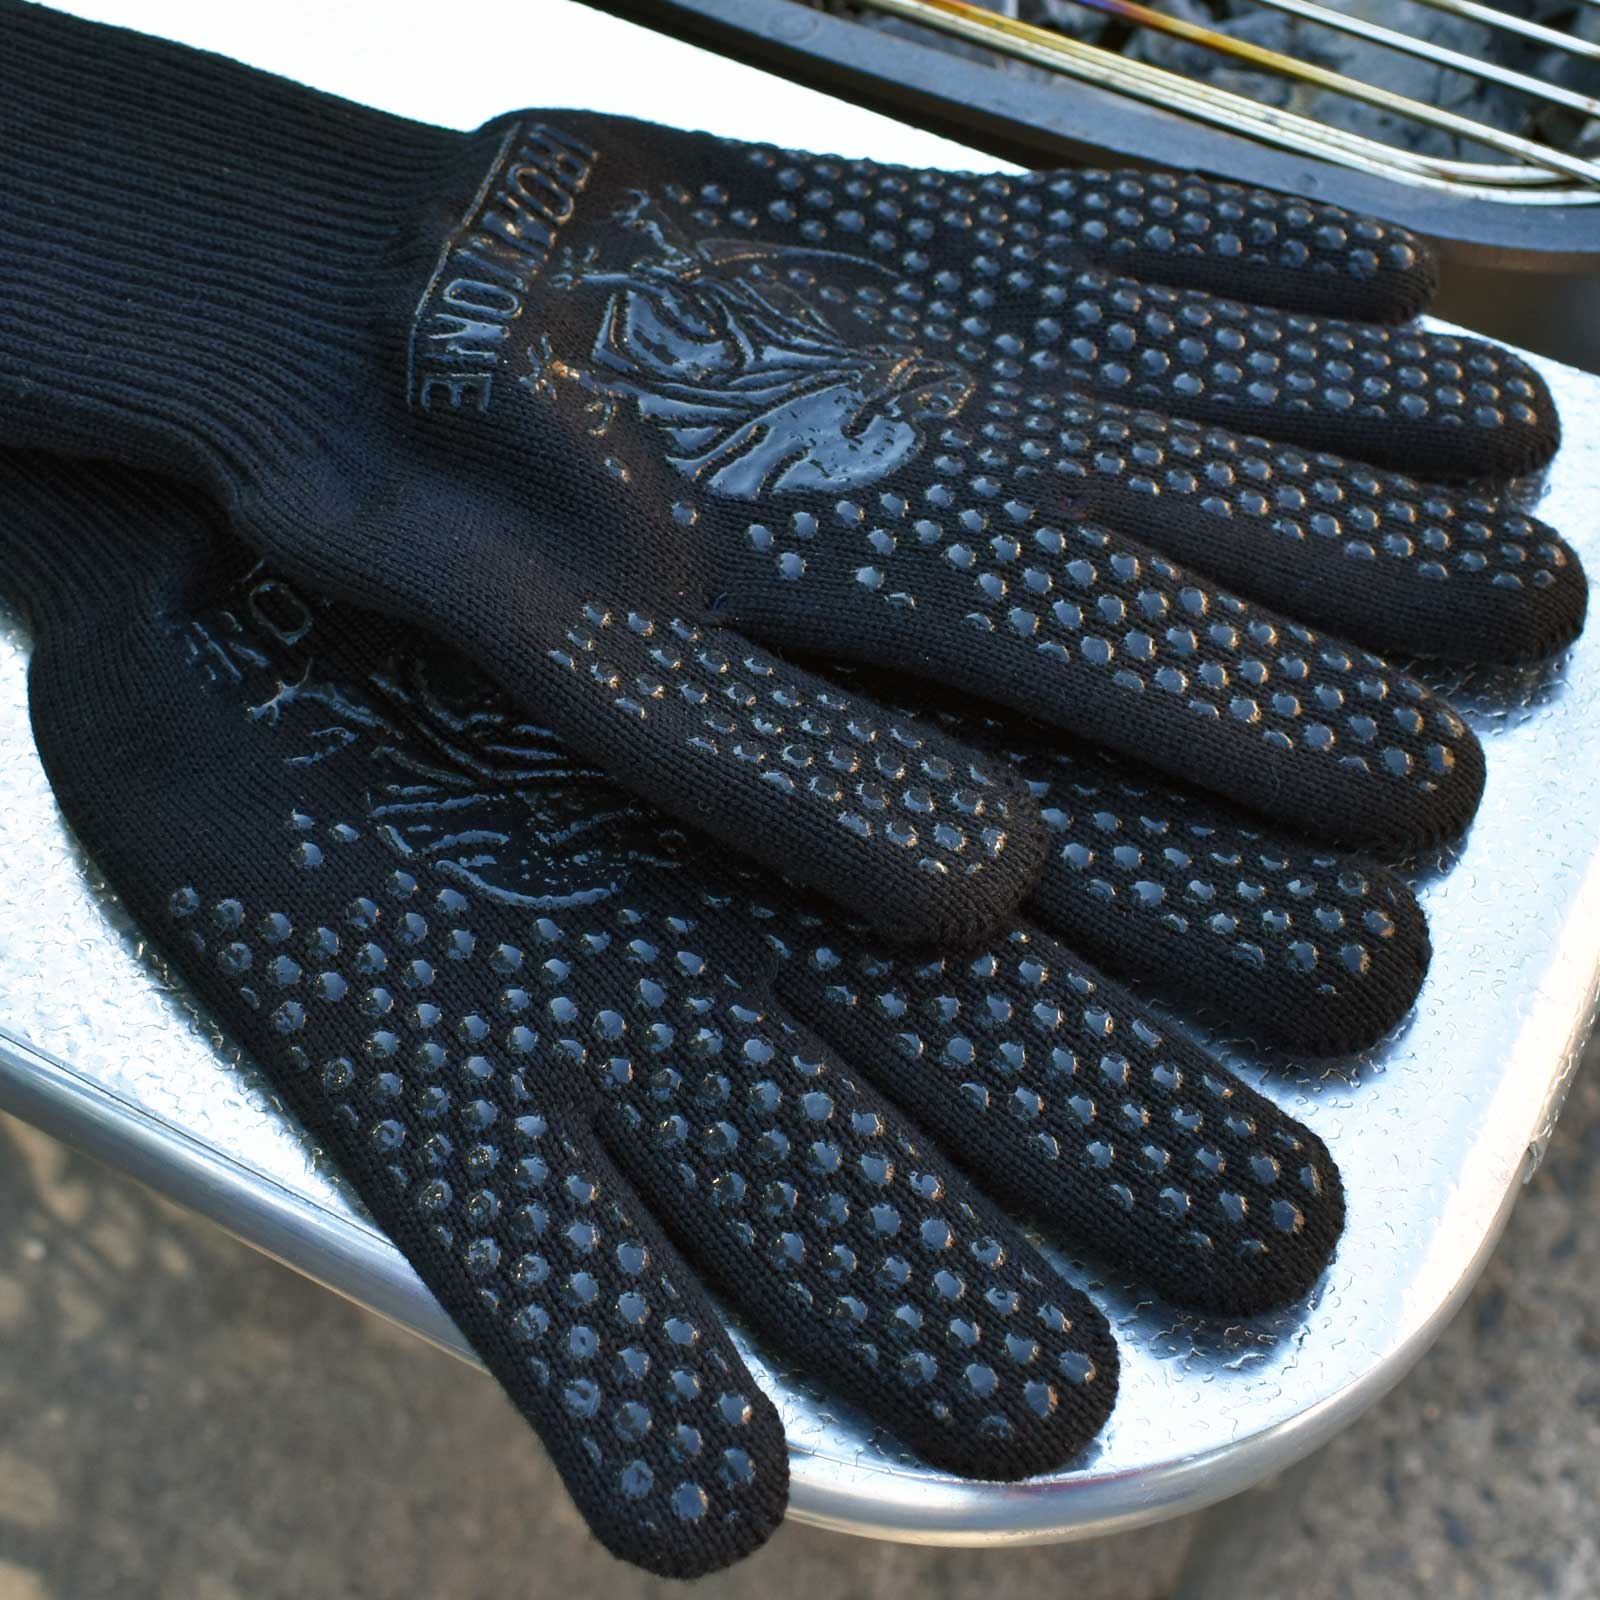 Ironstone-gloves-black3